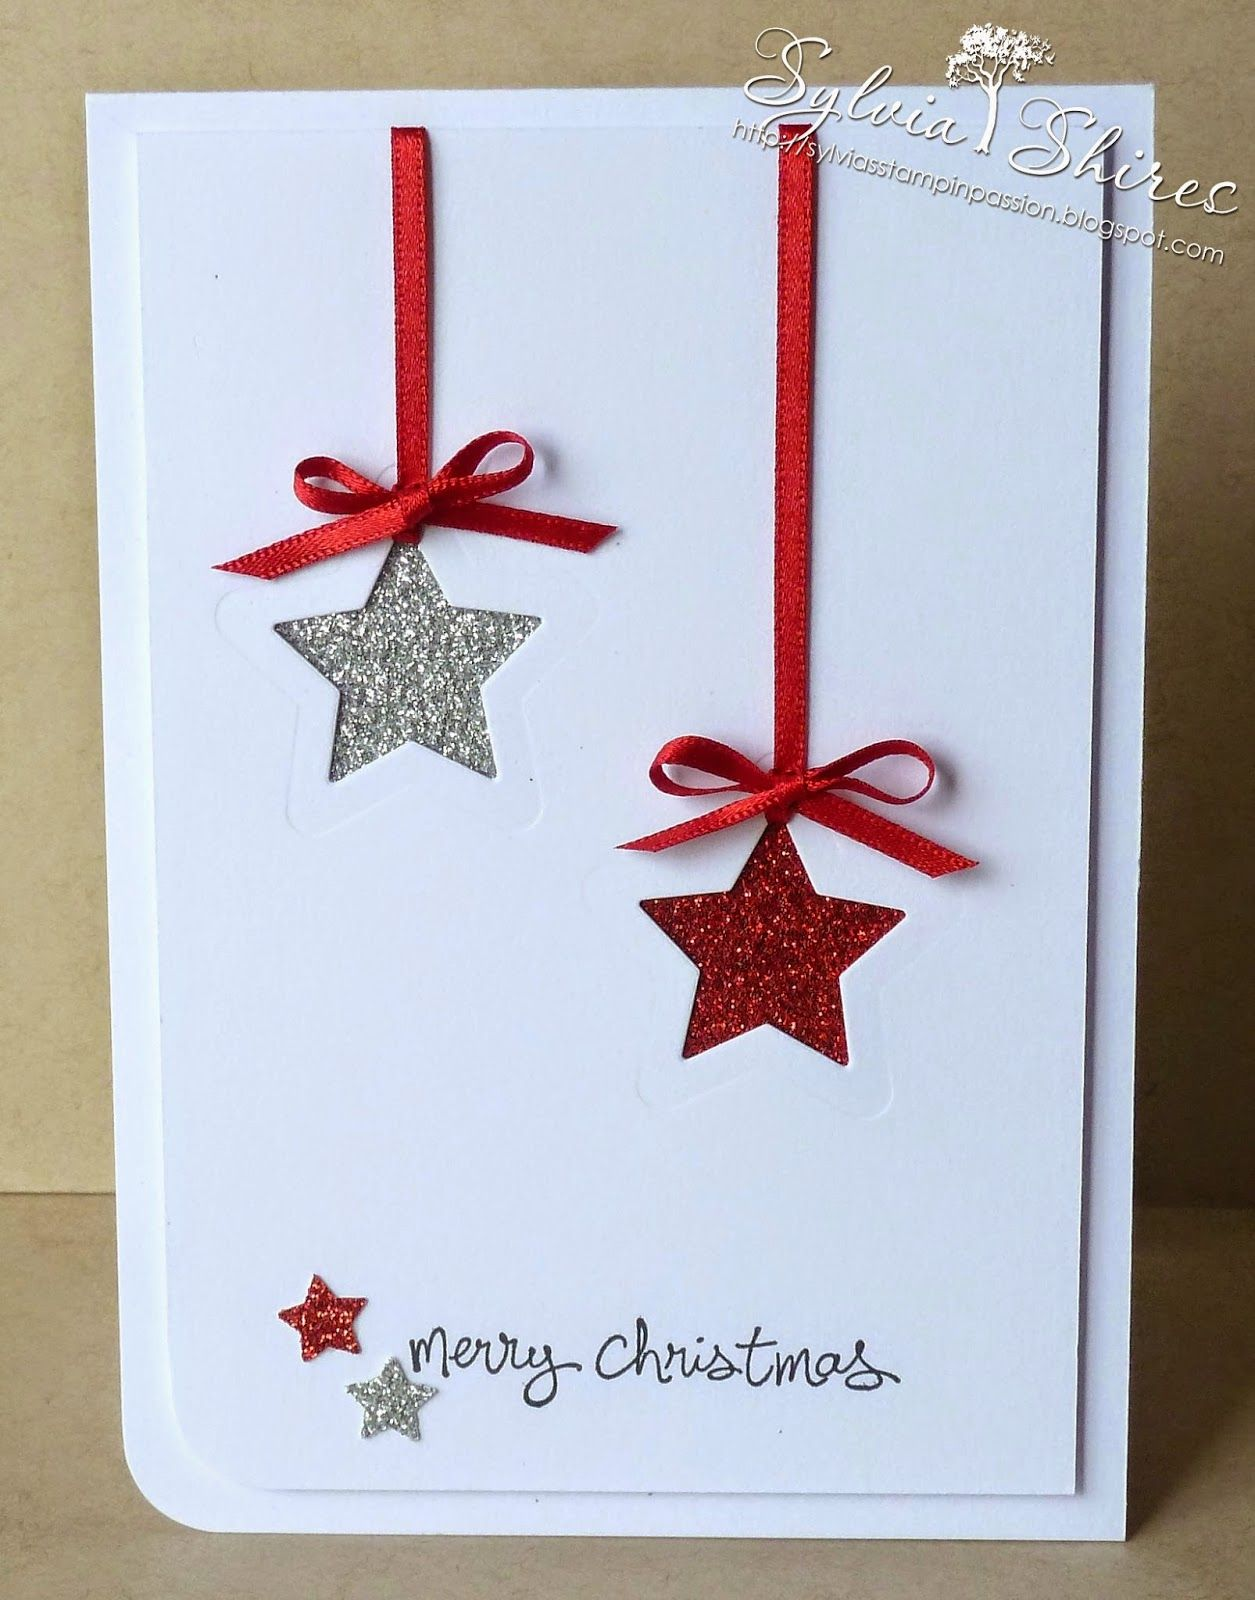 The First Card Is Made With The Festival Of Trees Stamps And Punch